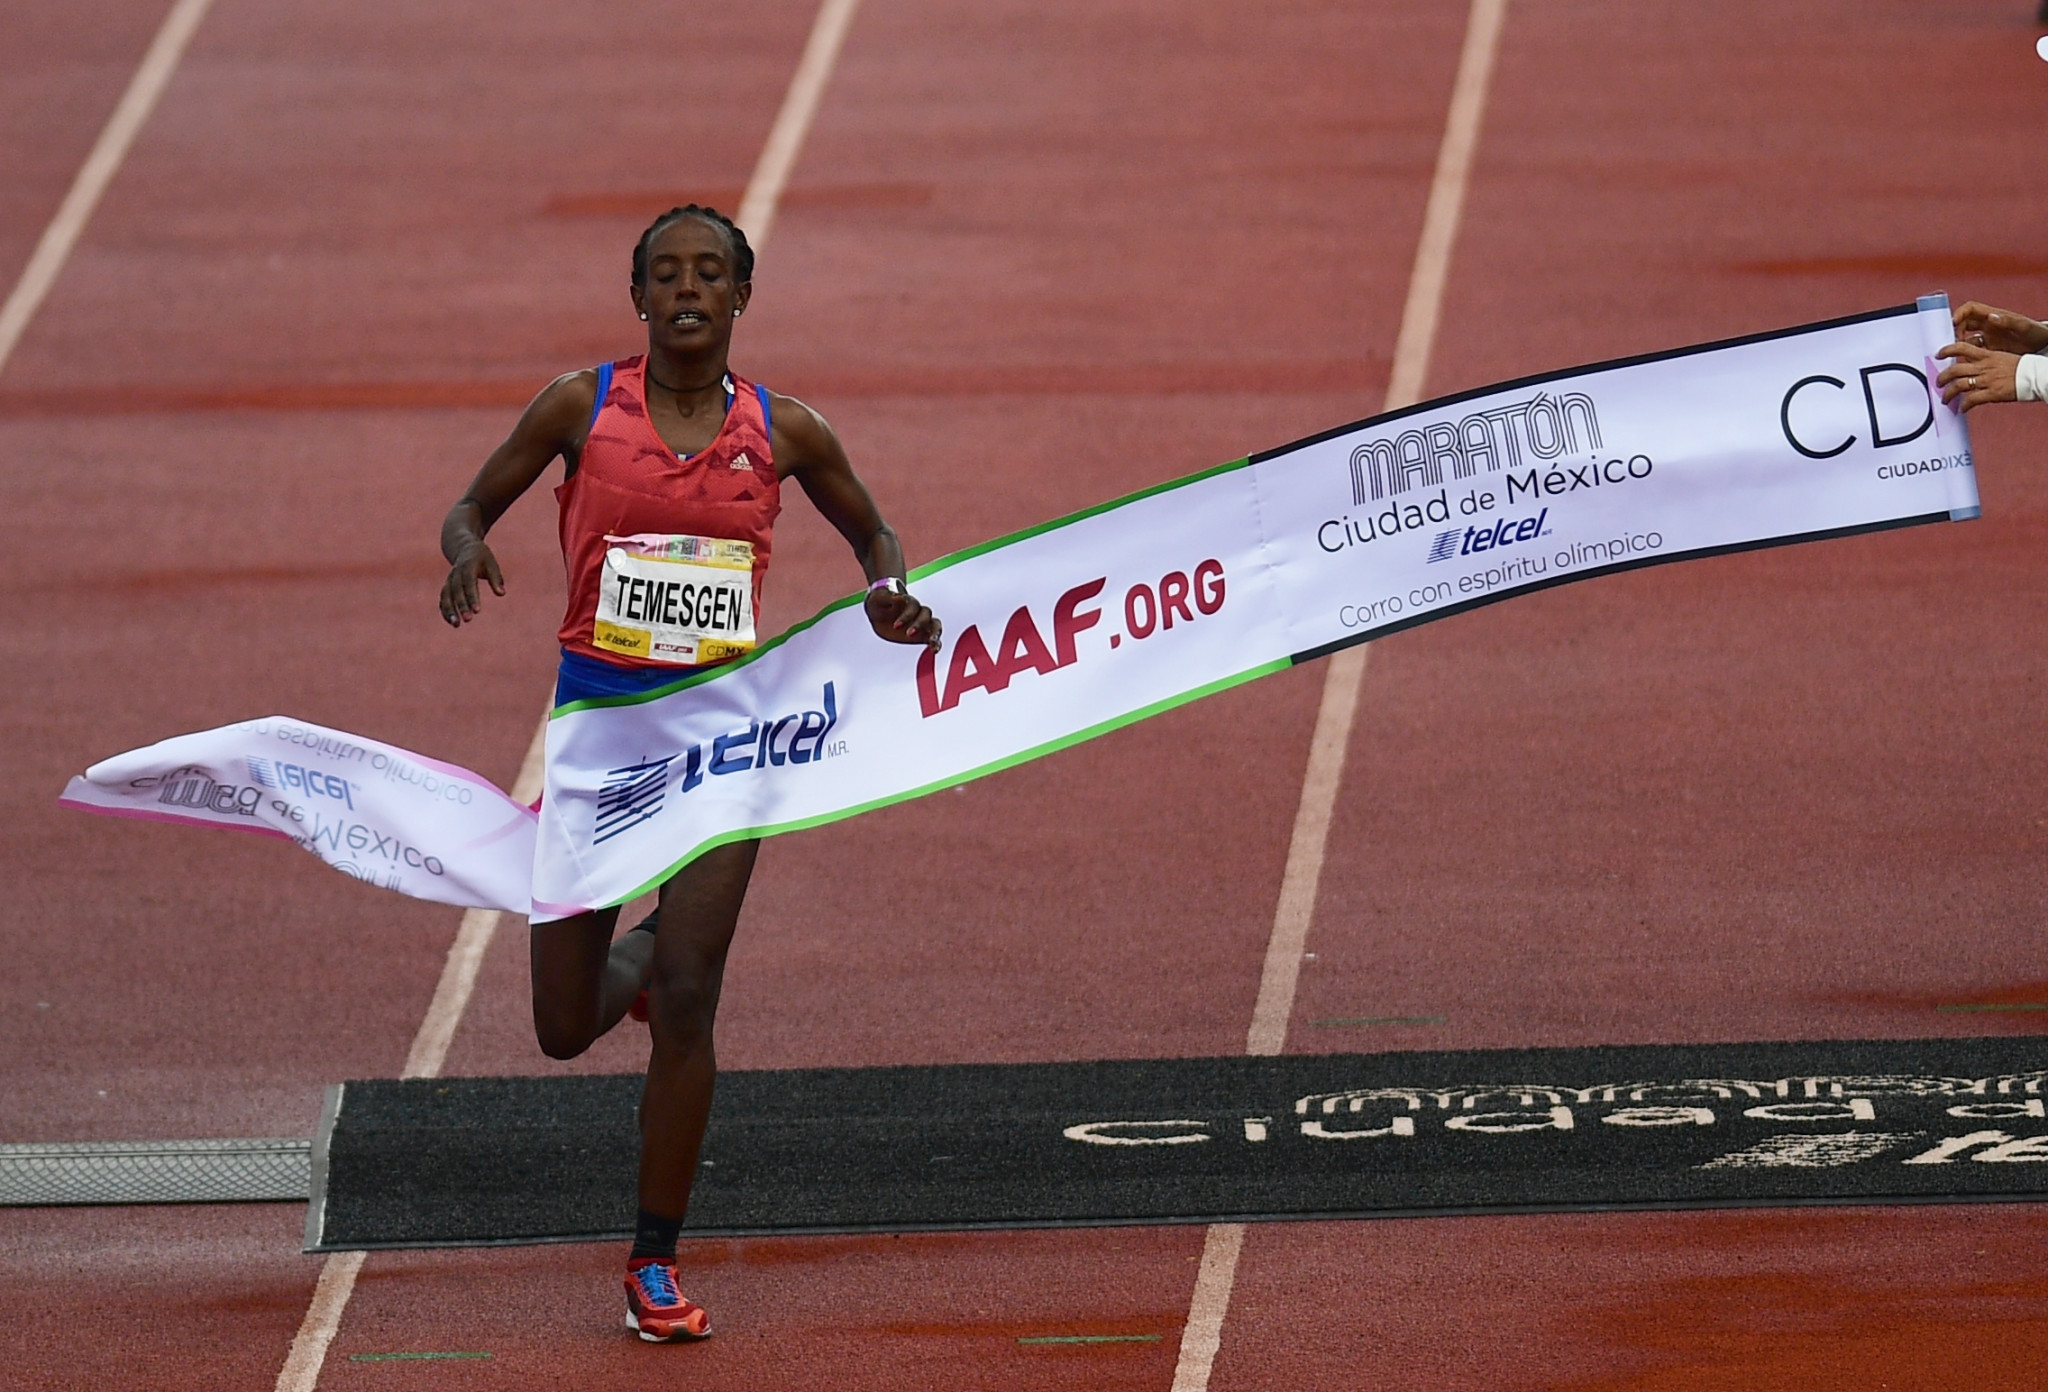 Ethiopian long-distance runner Wodaj given 12-year ban for doping and falsifying evidence